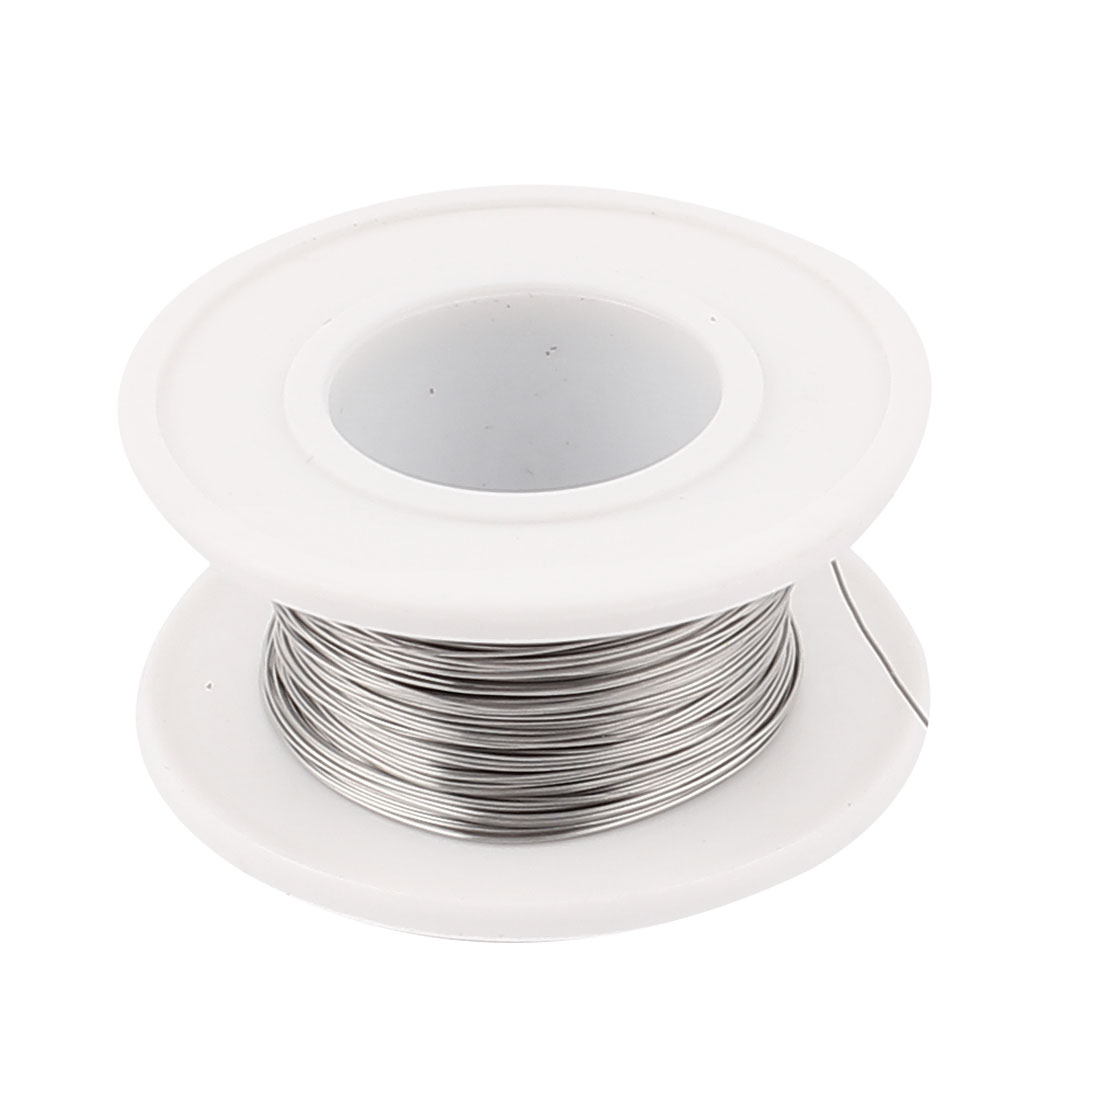 Nichrome 80 0.25mm 30 Gauge AWG 115ft Roll 6.97 Ohms/ft Heater Wire